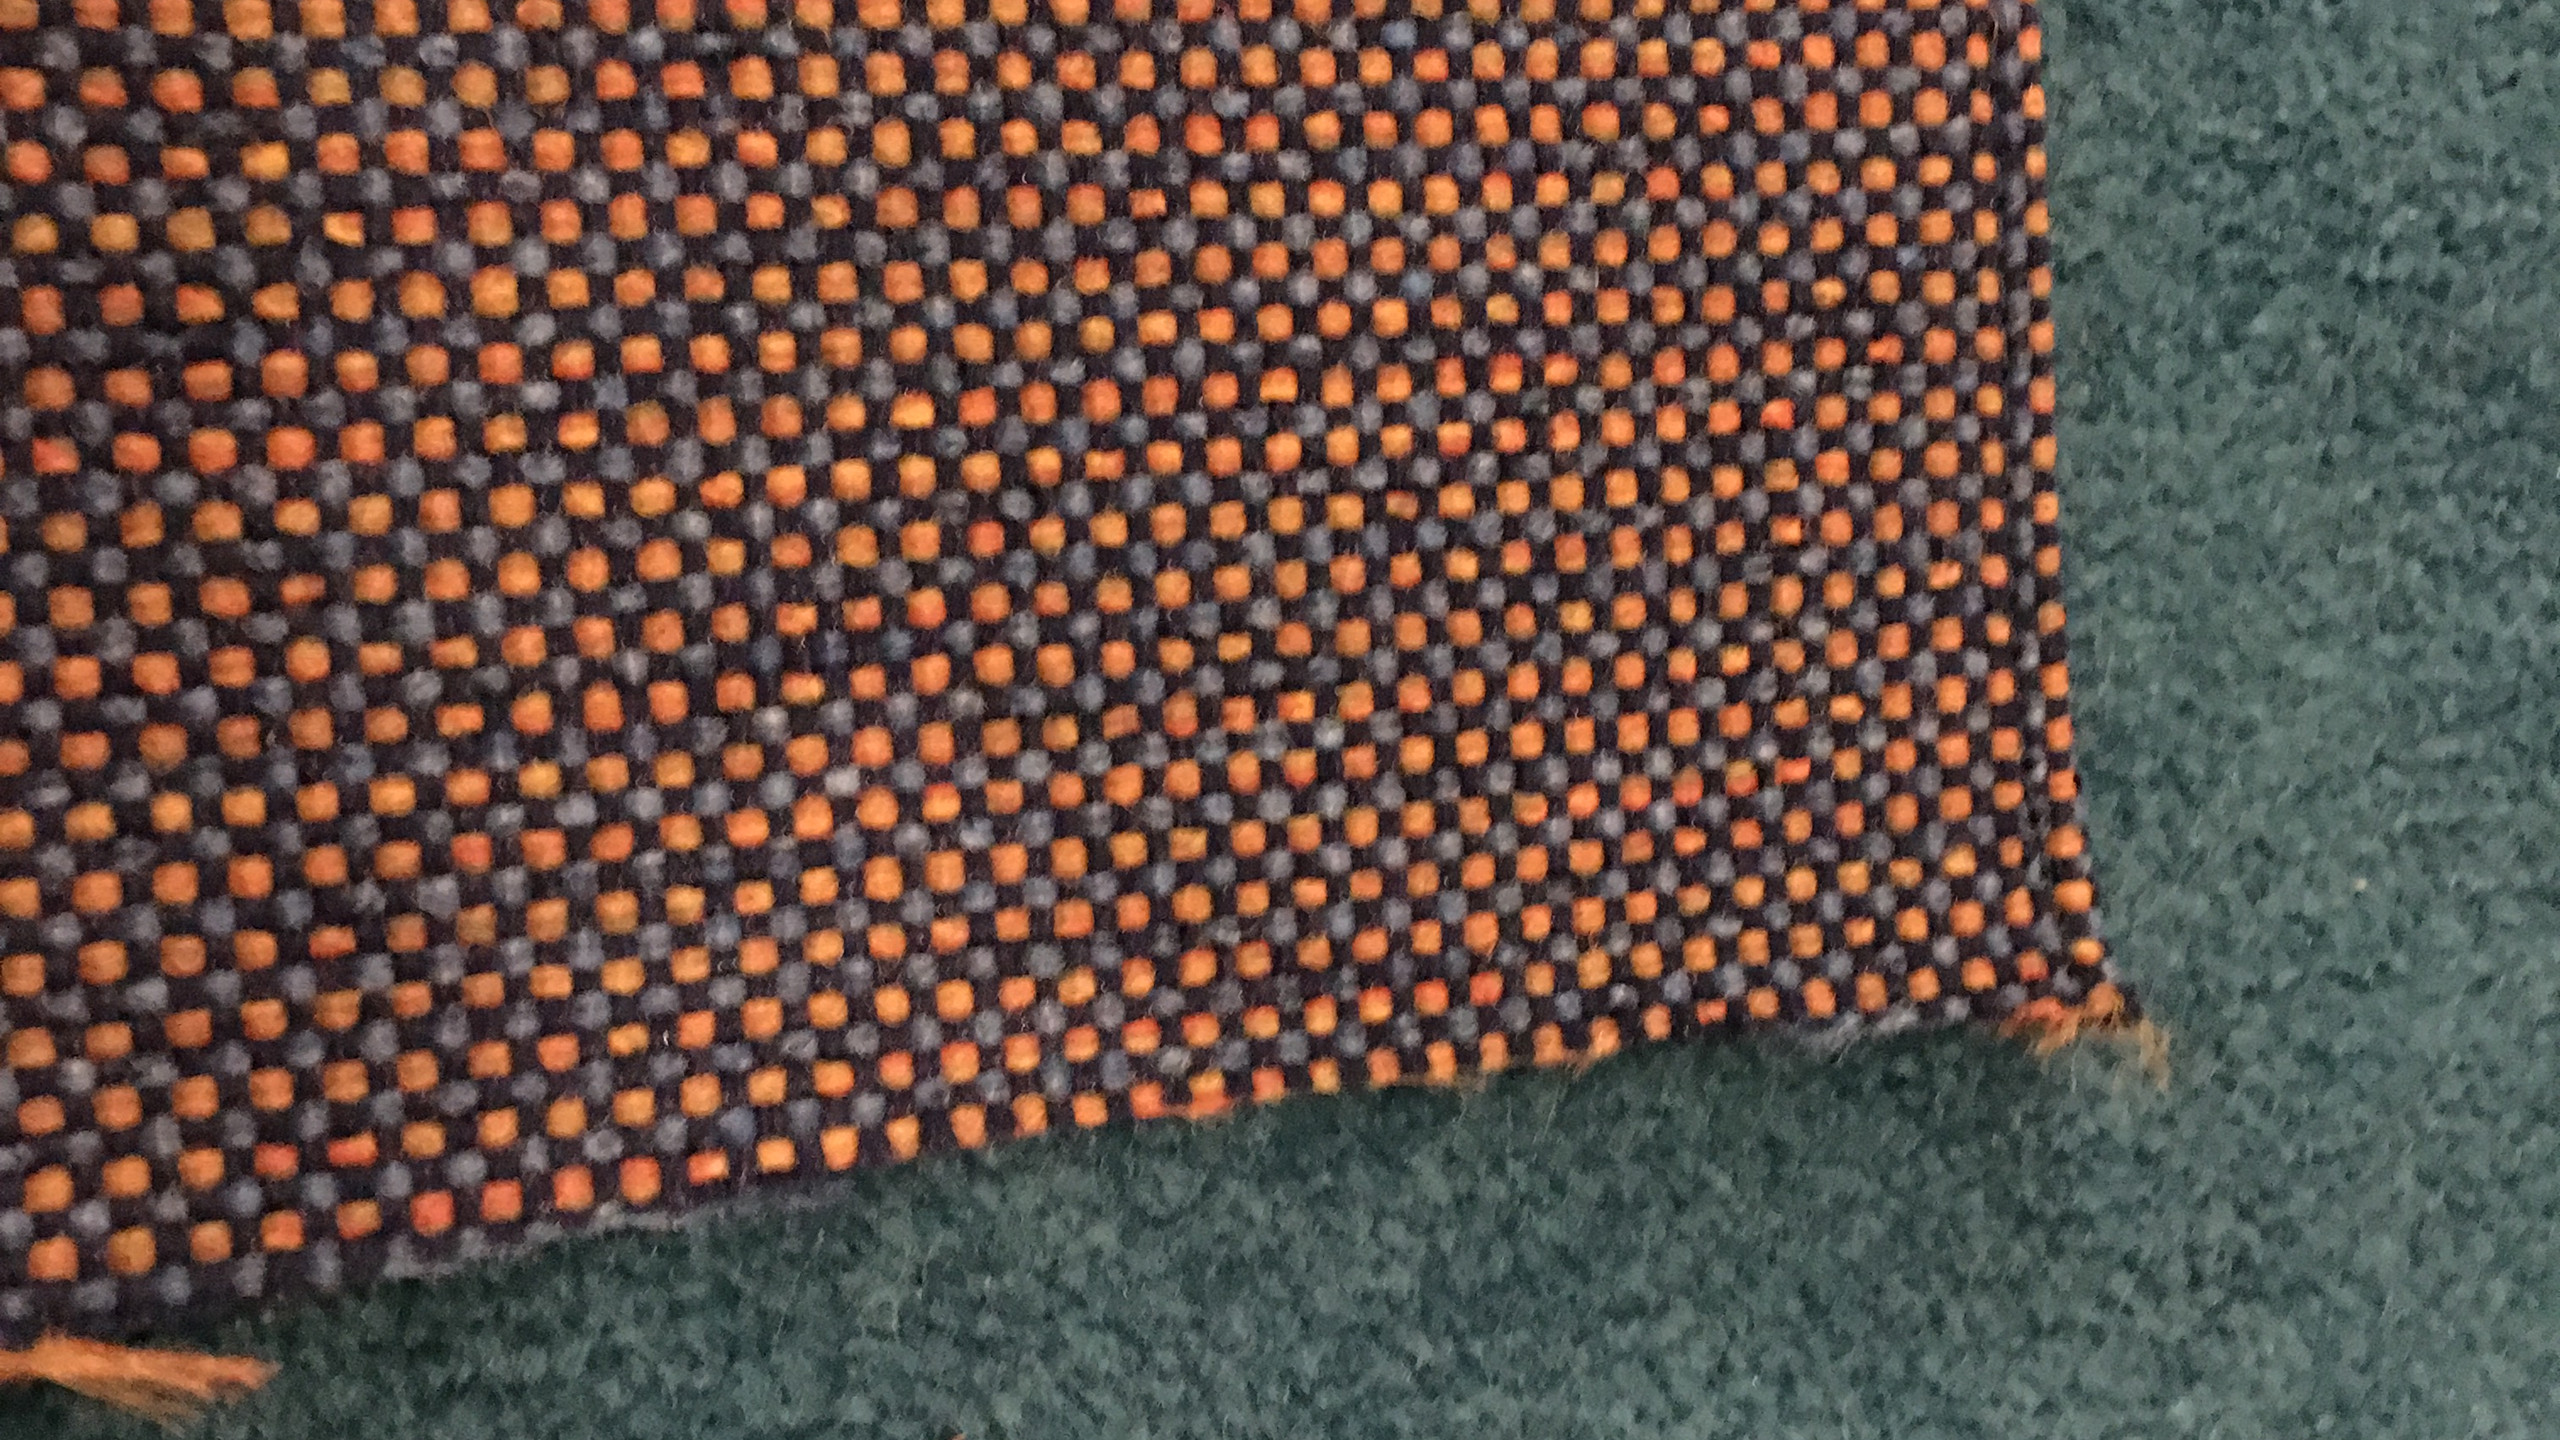 Fabric sample on carpet - close up